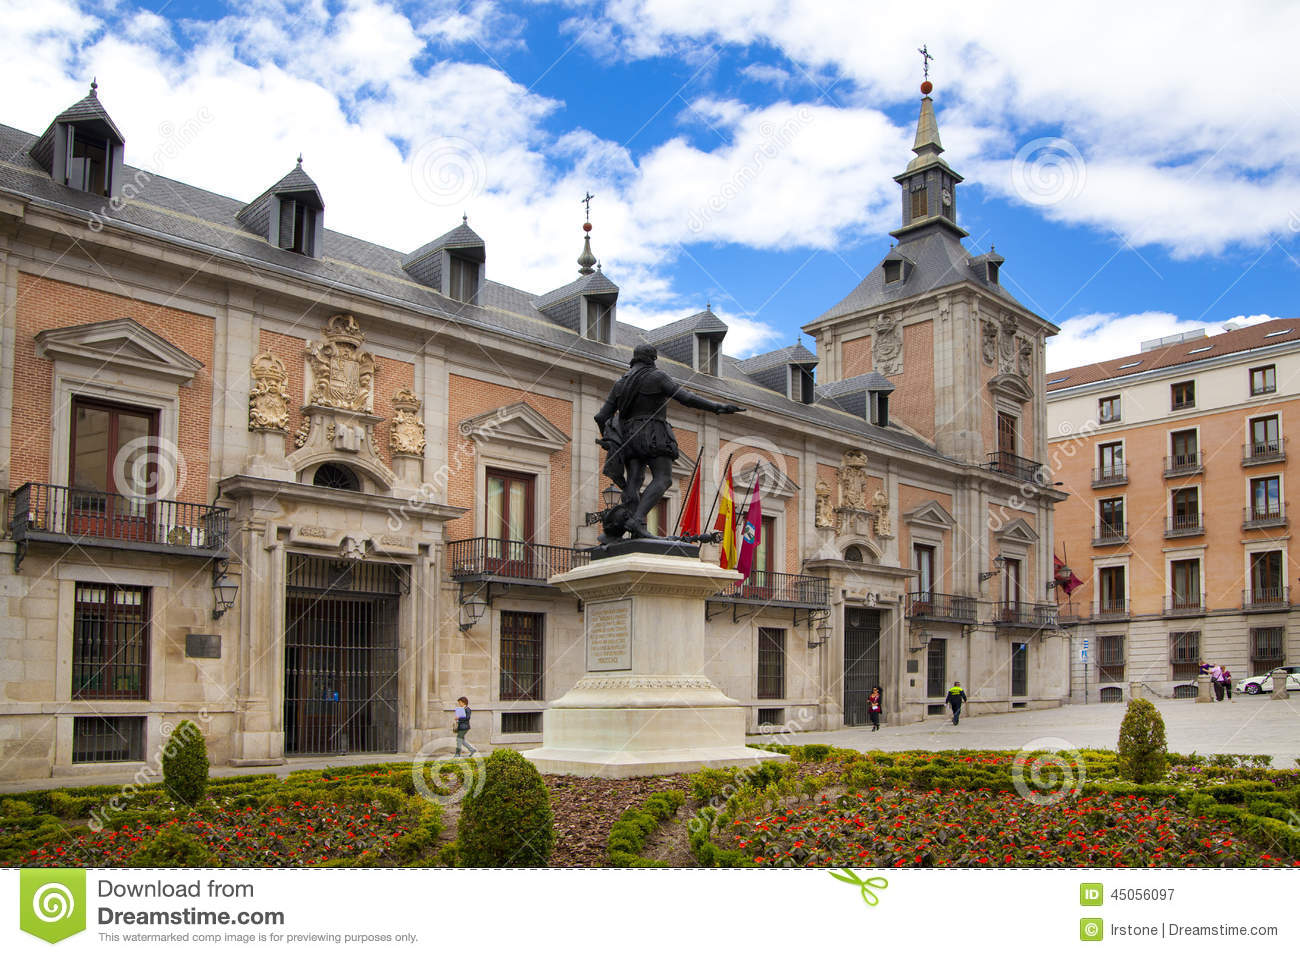 MADRID, SPAIN - MAY 28, 2014: Government buildings in old street